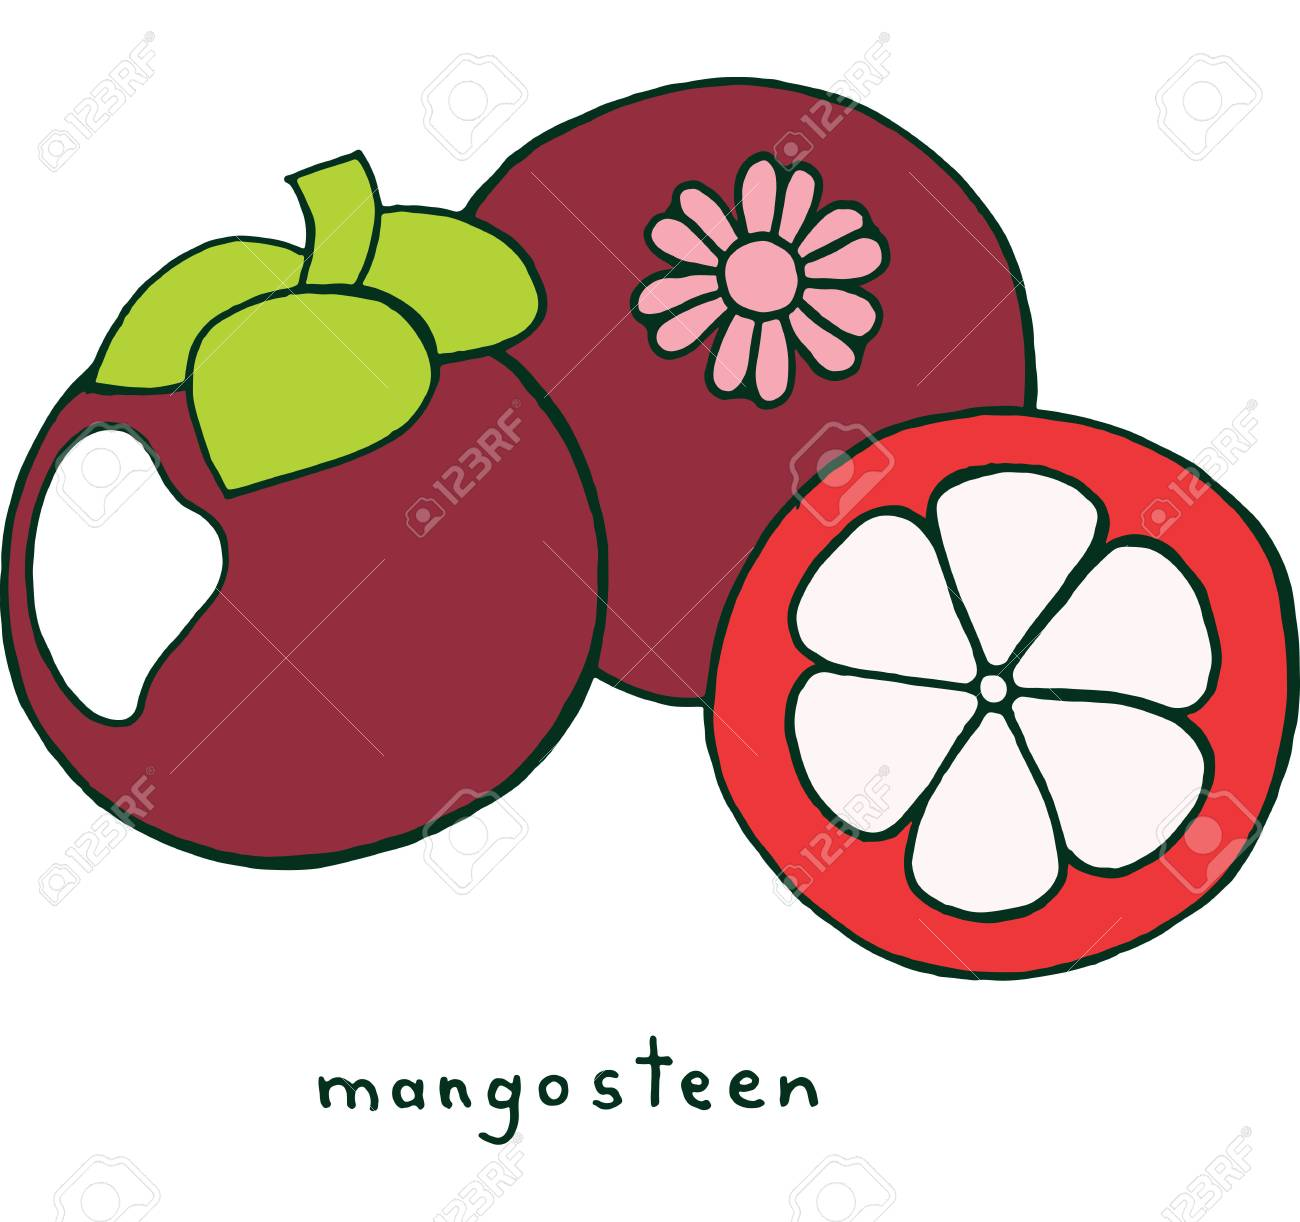 Mangosteen Fruit Images Free Download